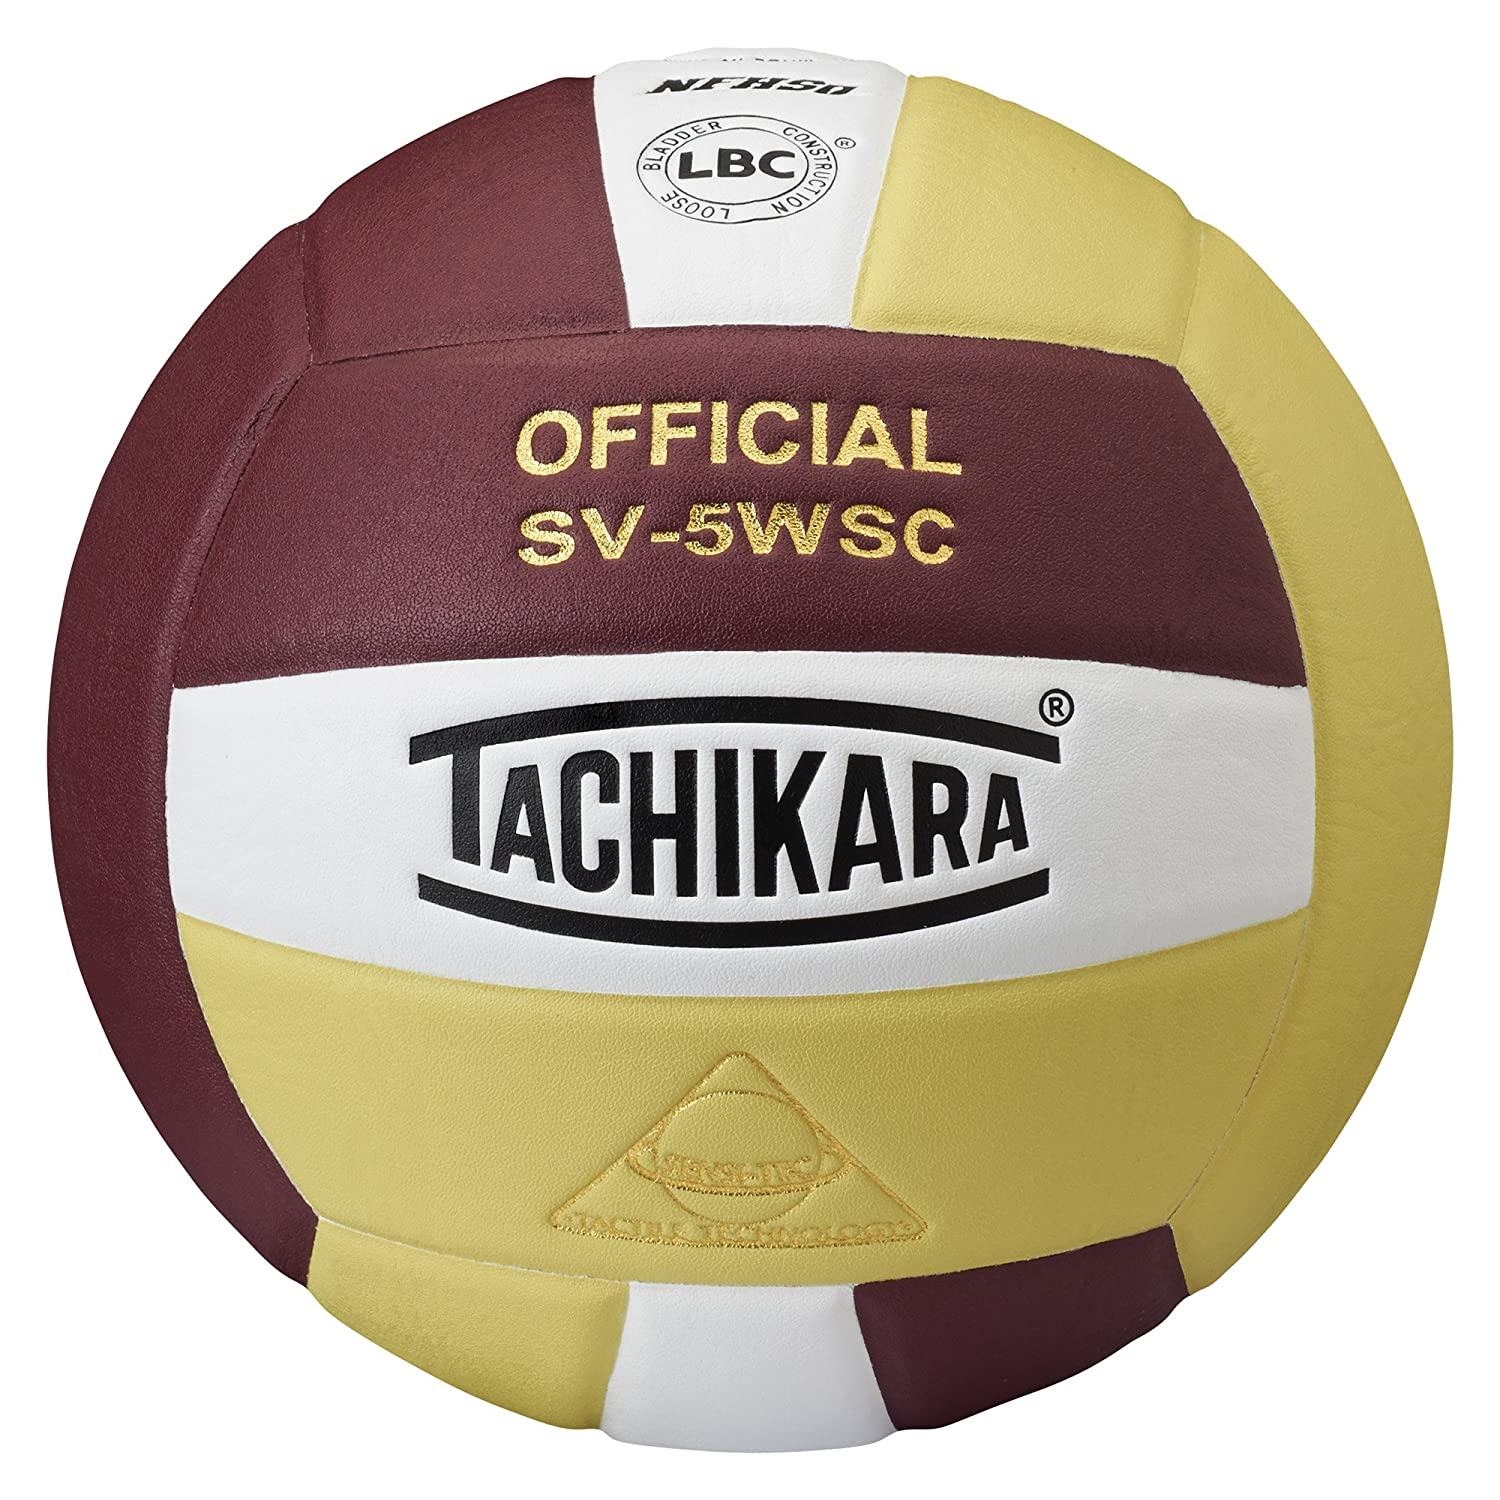 Tachikara Sv5wsc Sensi Tec Composite haute performance de volley-ball SV5WSC.DGWG Dark Green/White/Gold Official